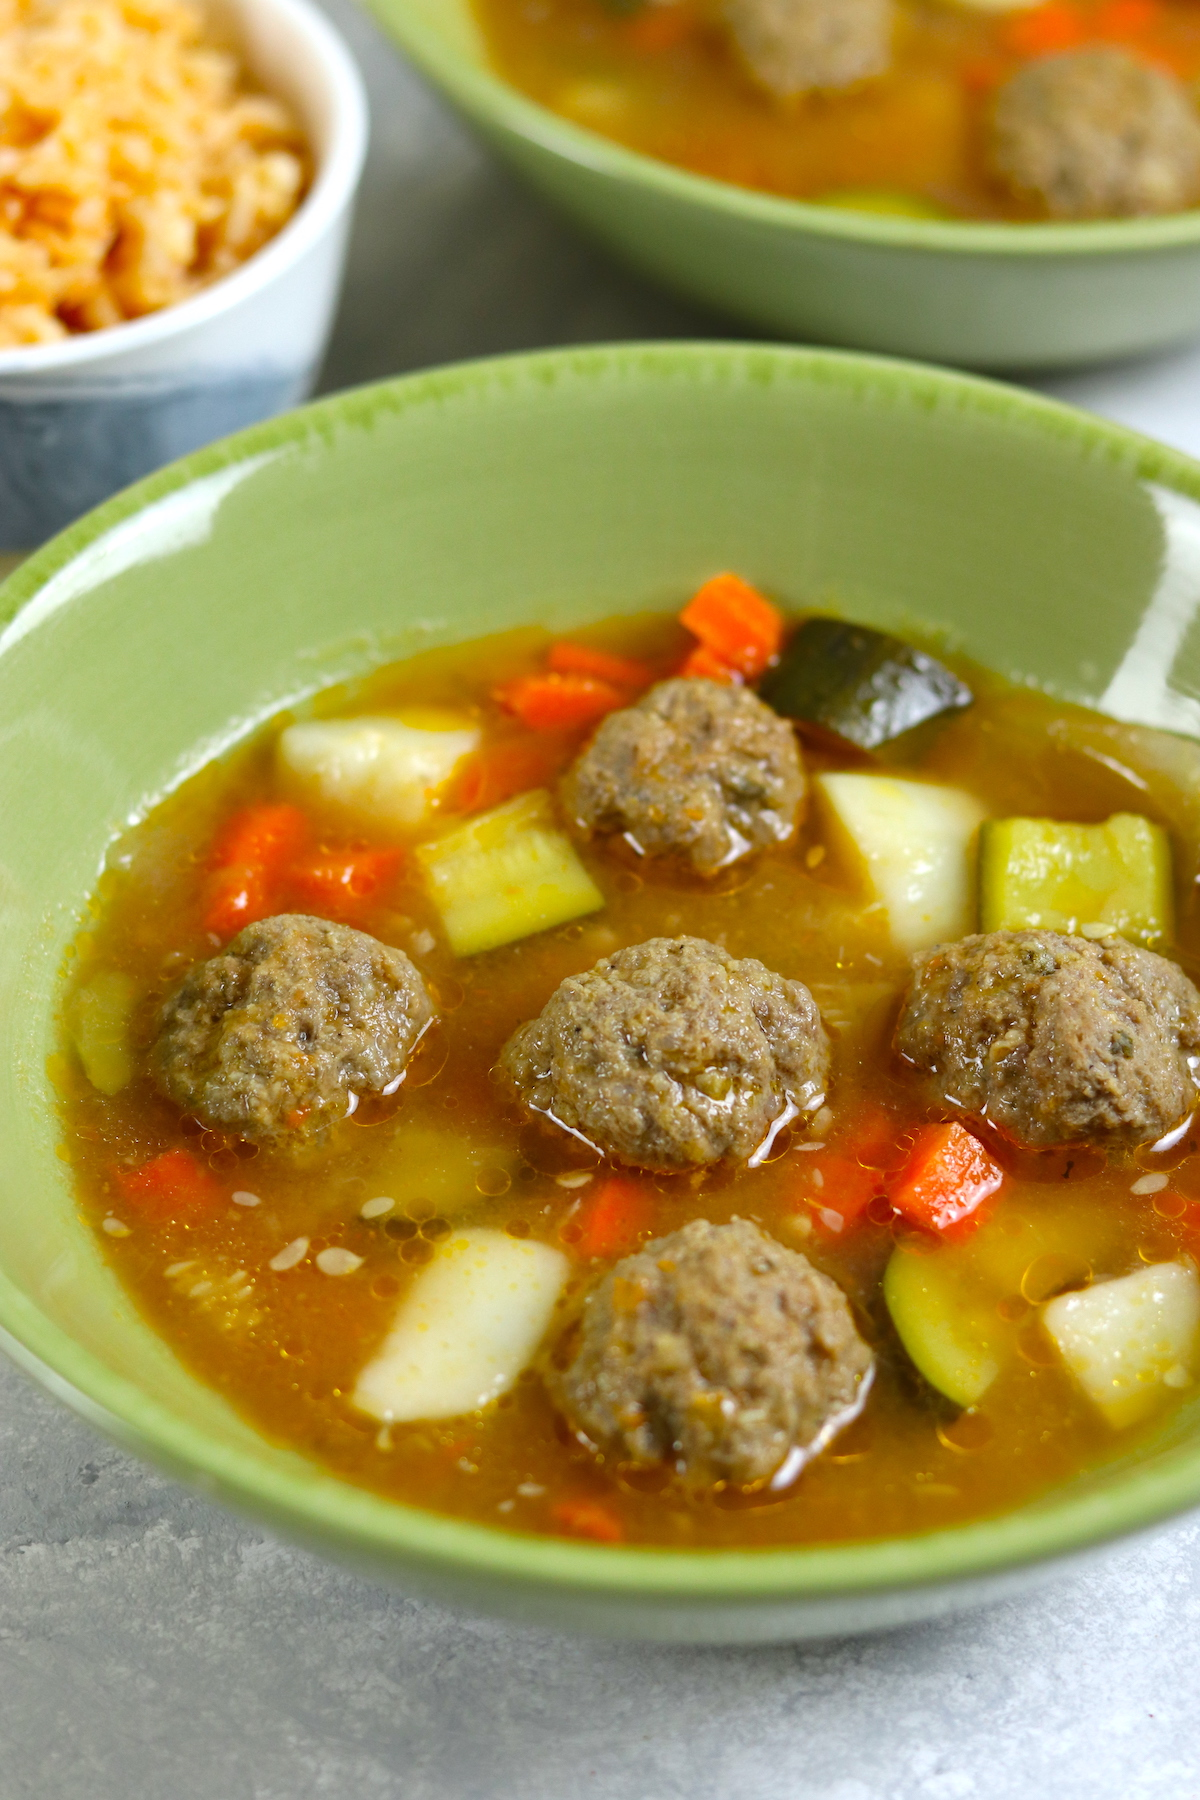 beef meatballs and vegetables in a green bowl